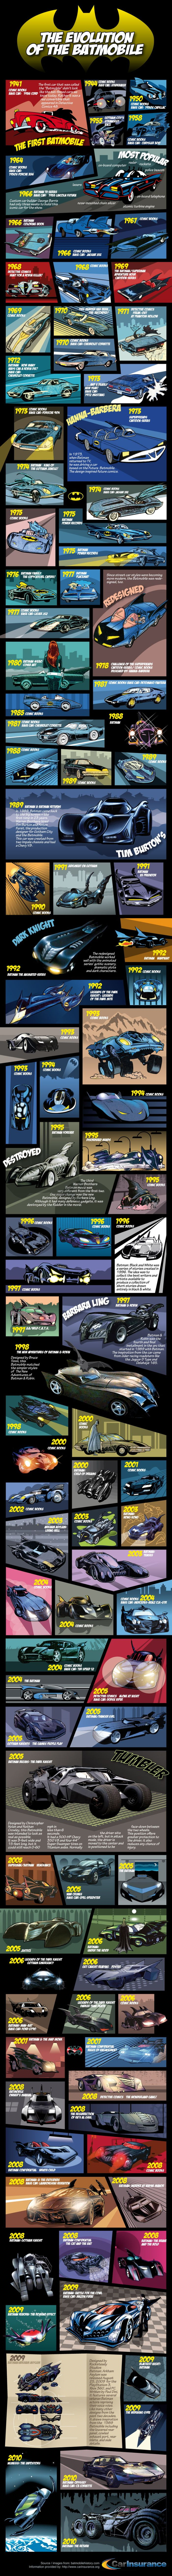 Illustrated History of the Batmobile (infographic)